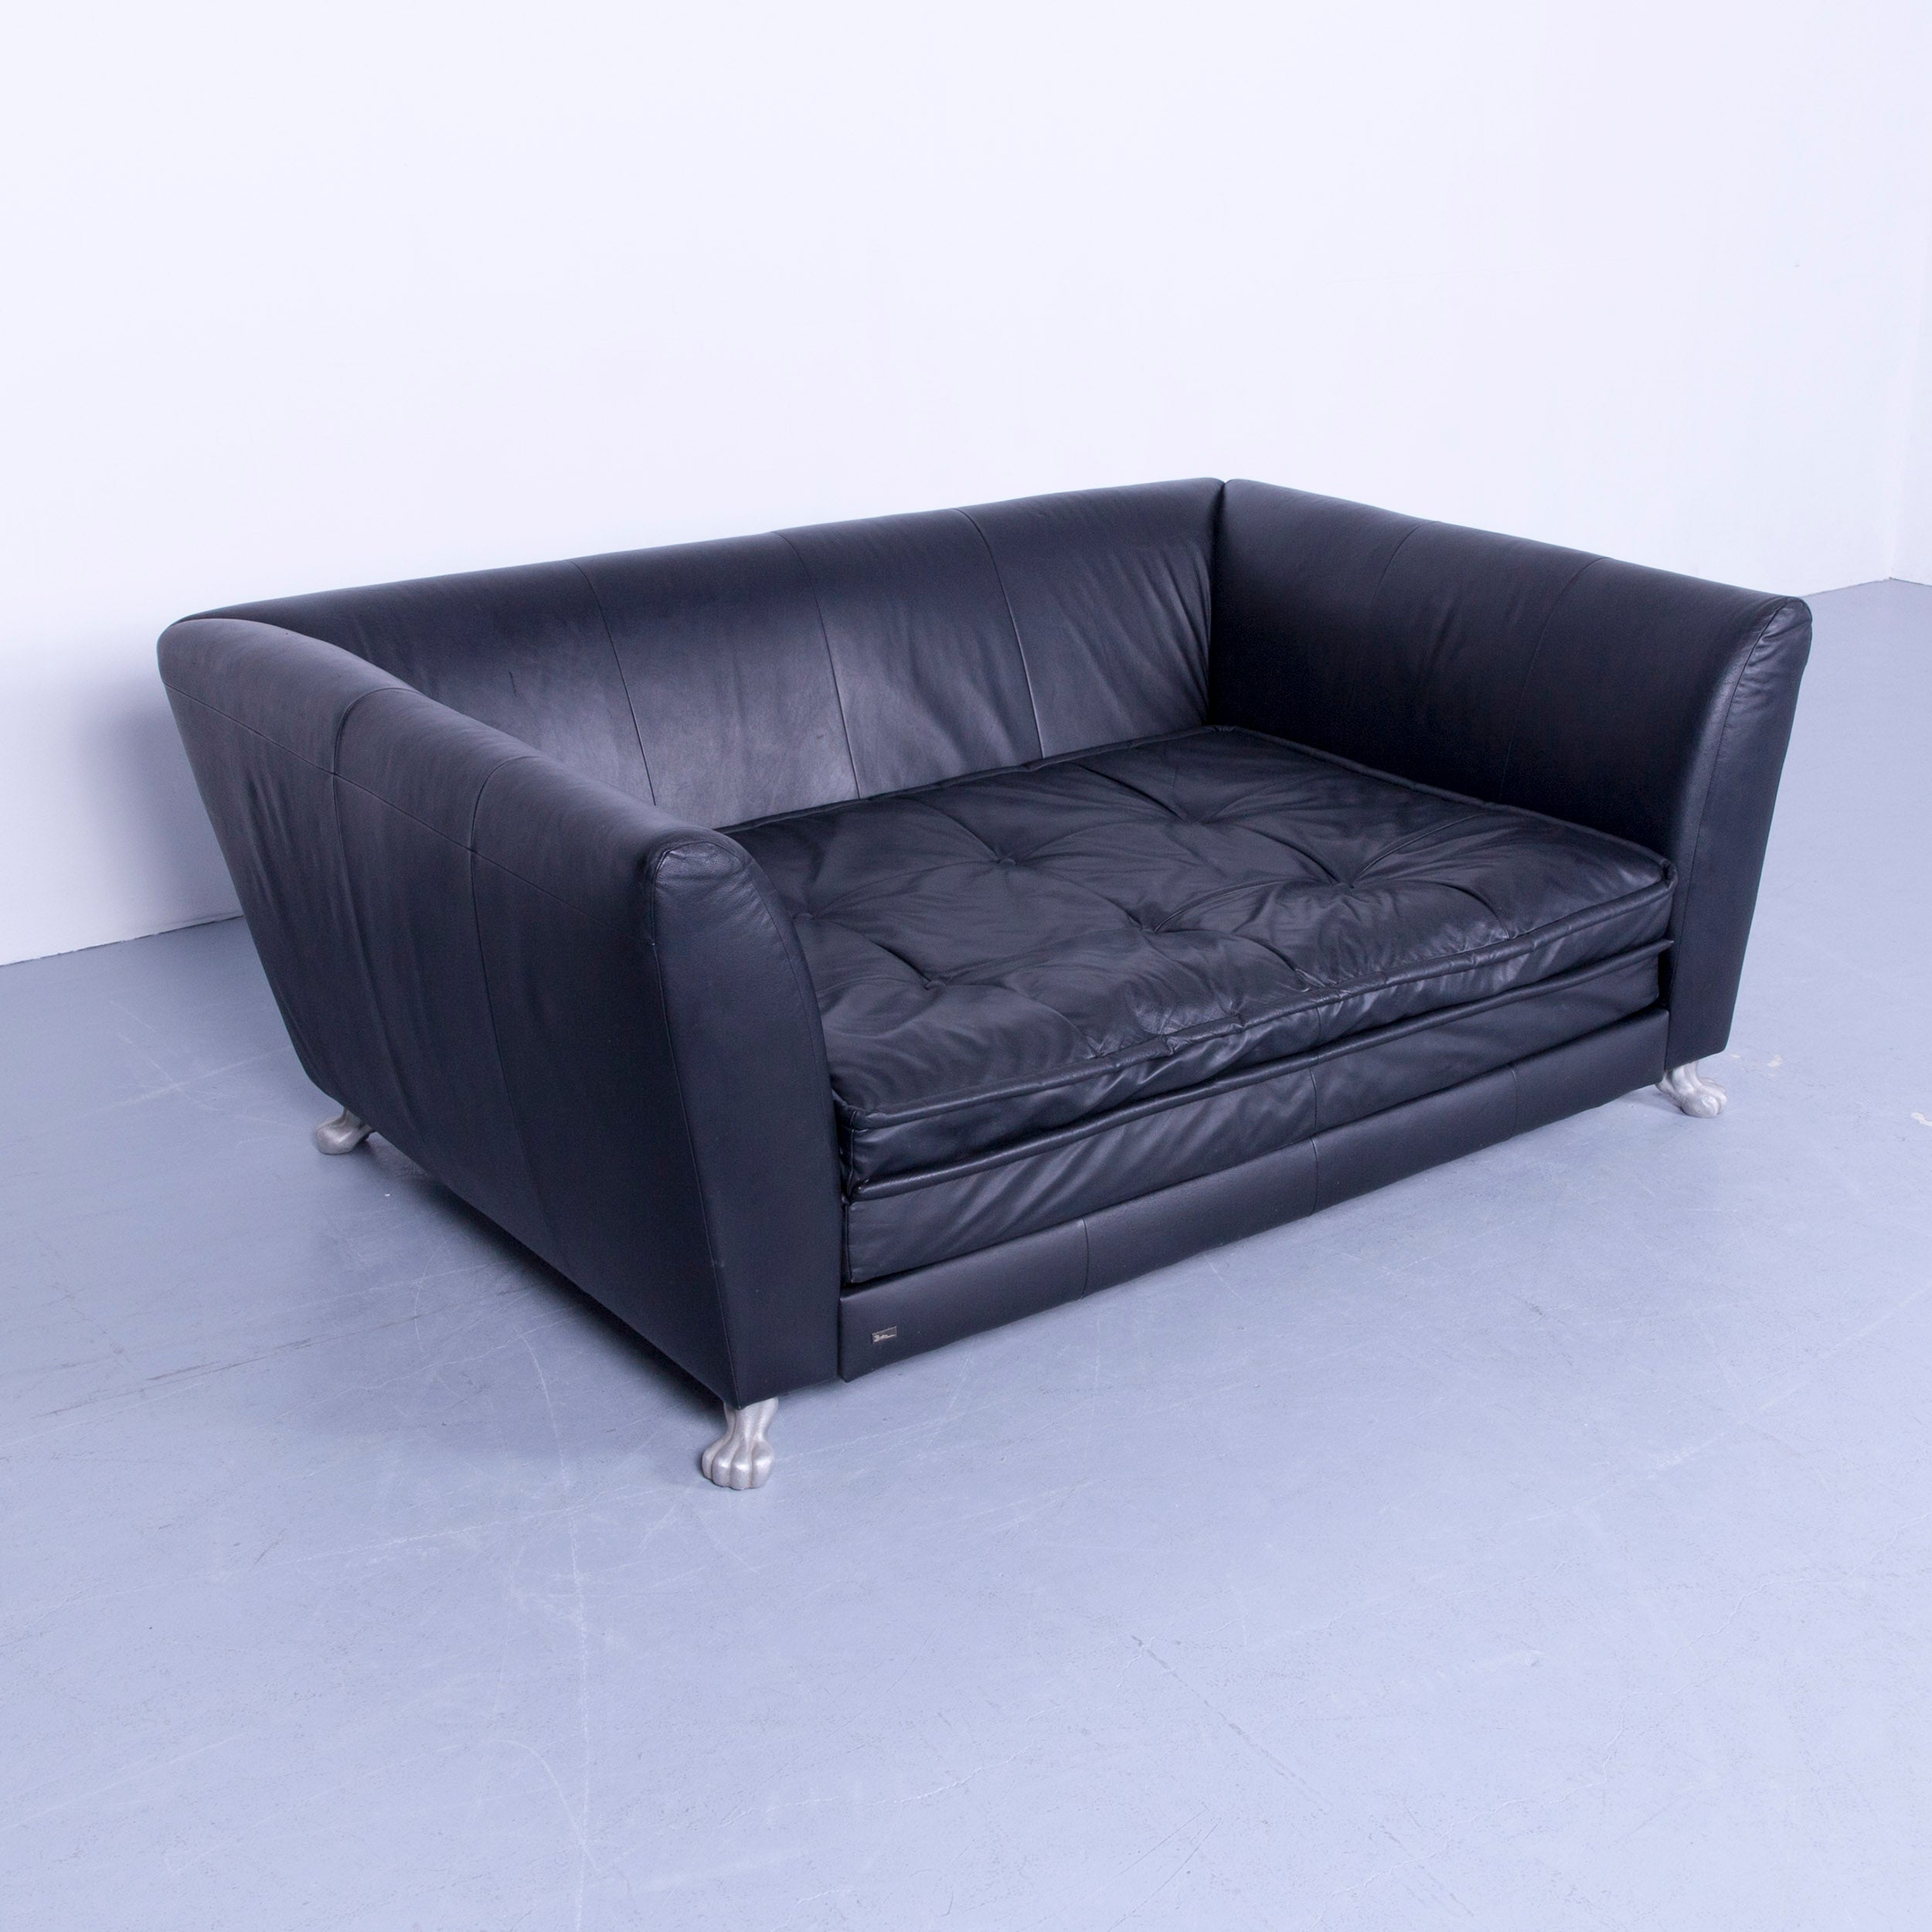 Bettsofa Timeo Bettsofa Leder Lovo In Leder With Bettsofa Leder Top Schlafcouch